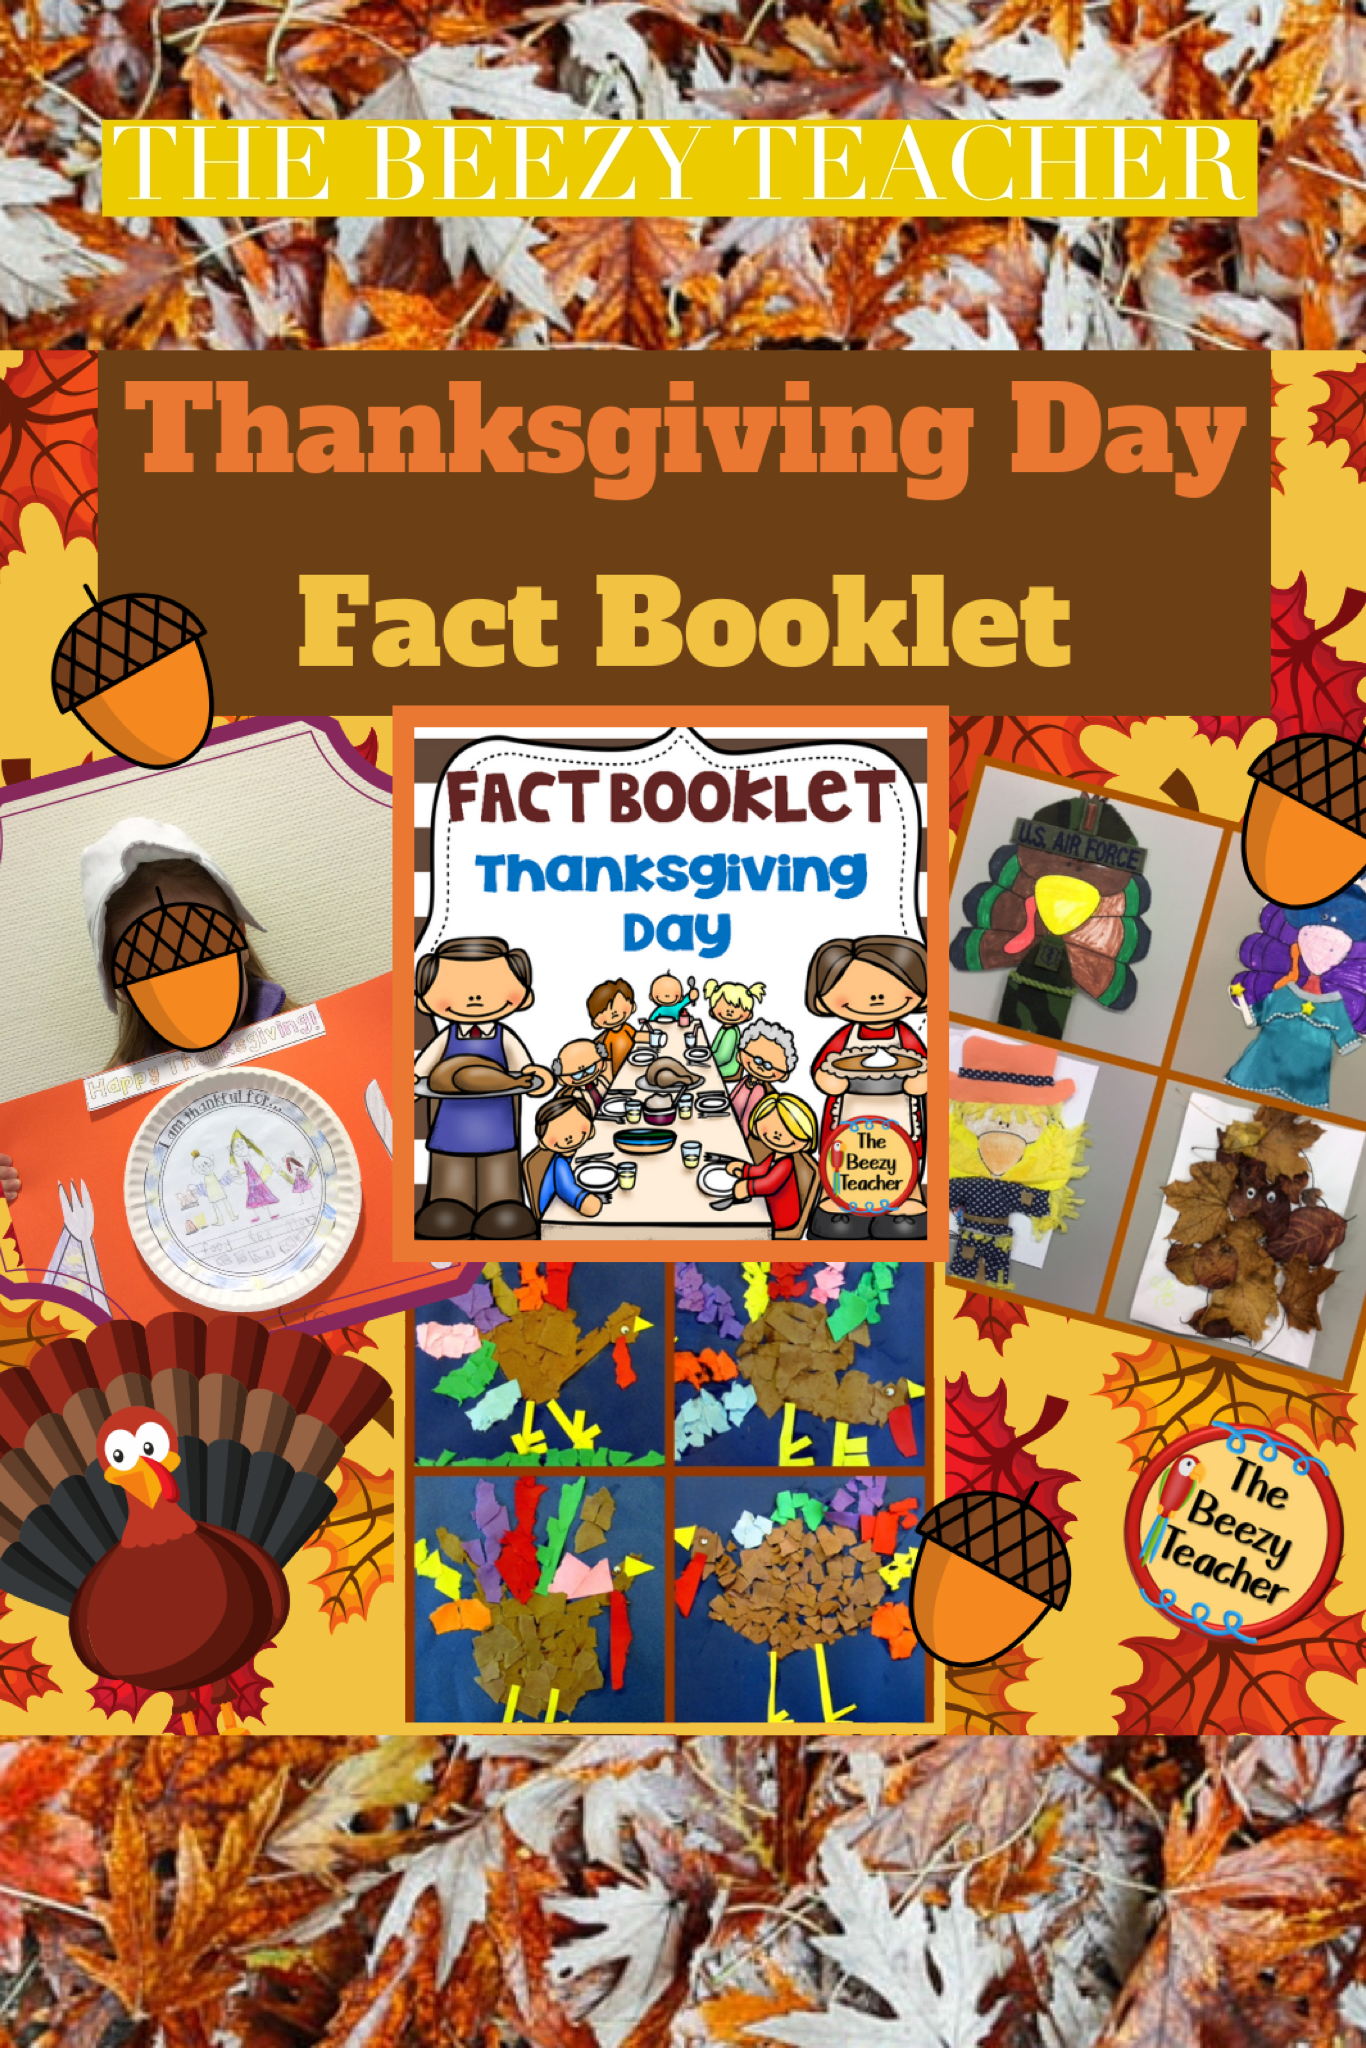 Fact Booklet – Thanksgiving Day